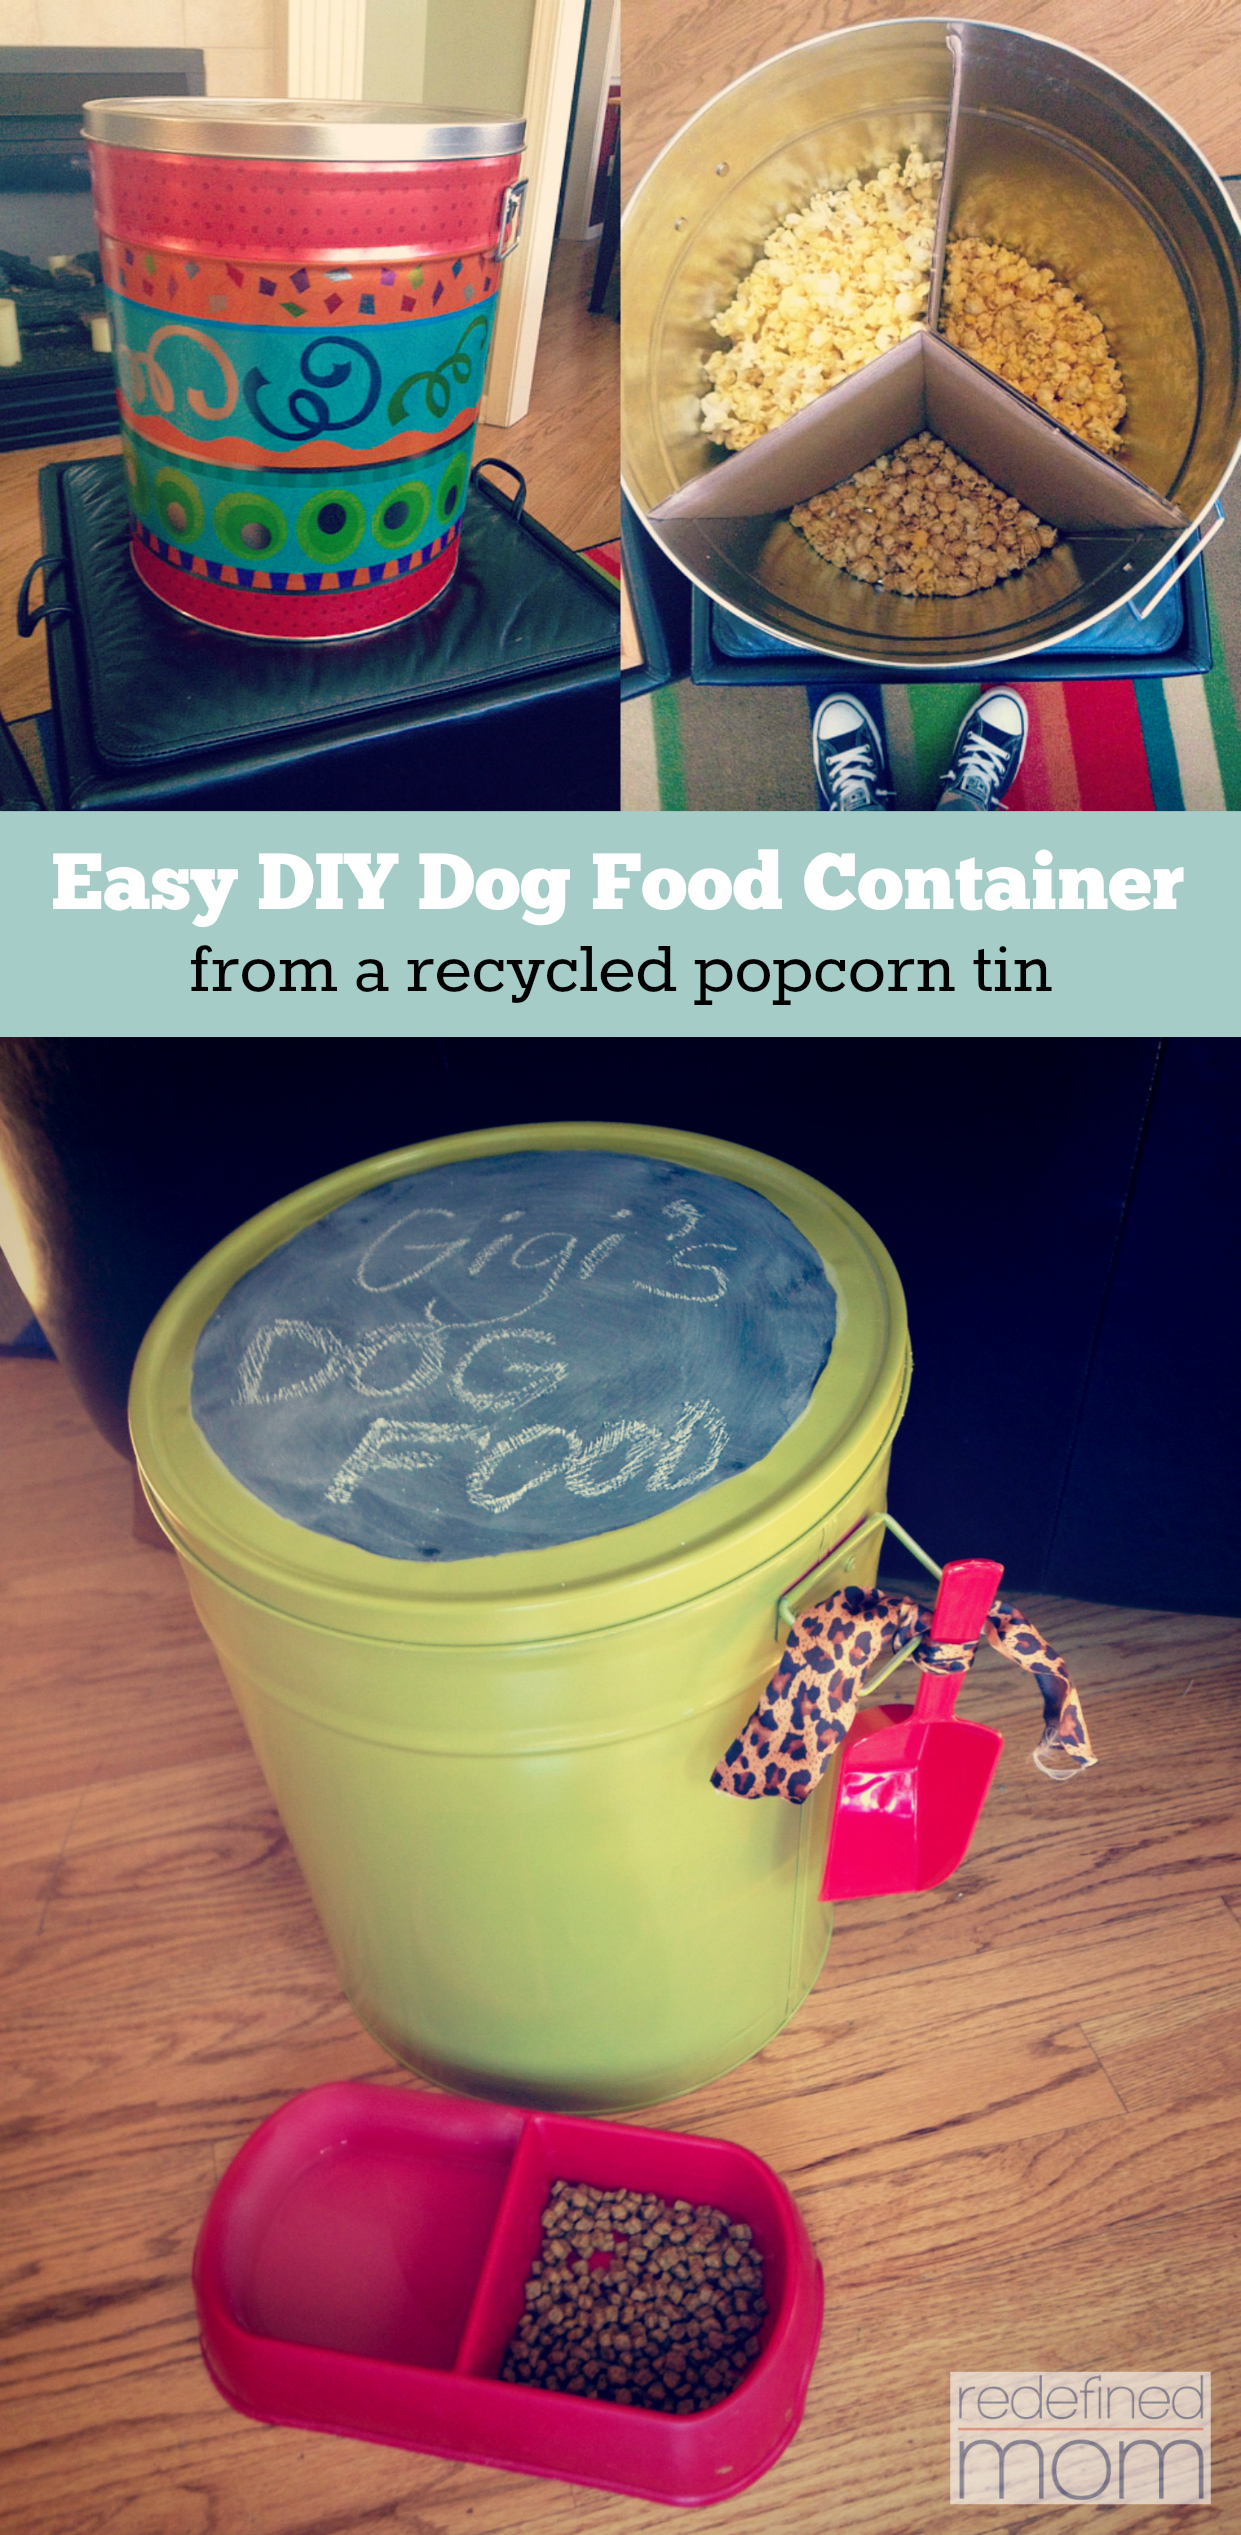 Easy DIY Dog Food Container Collage 1